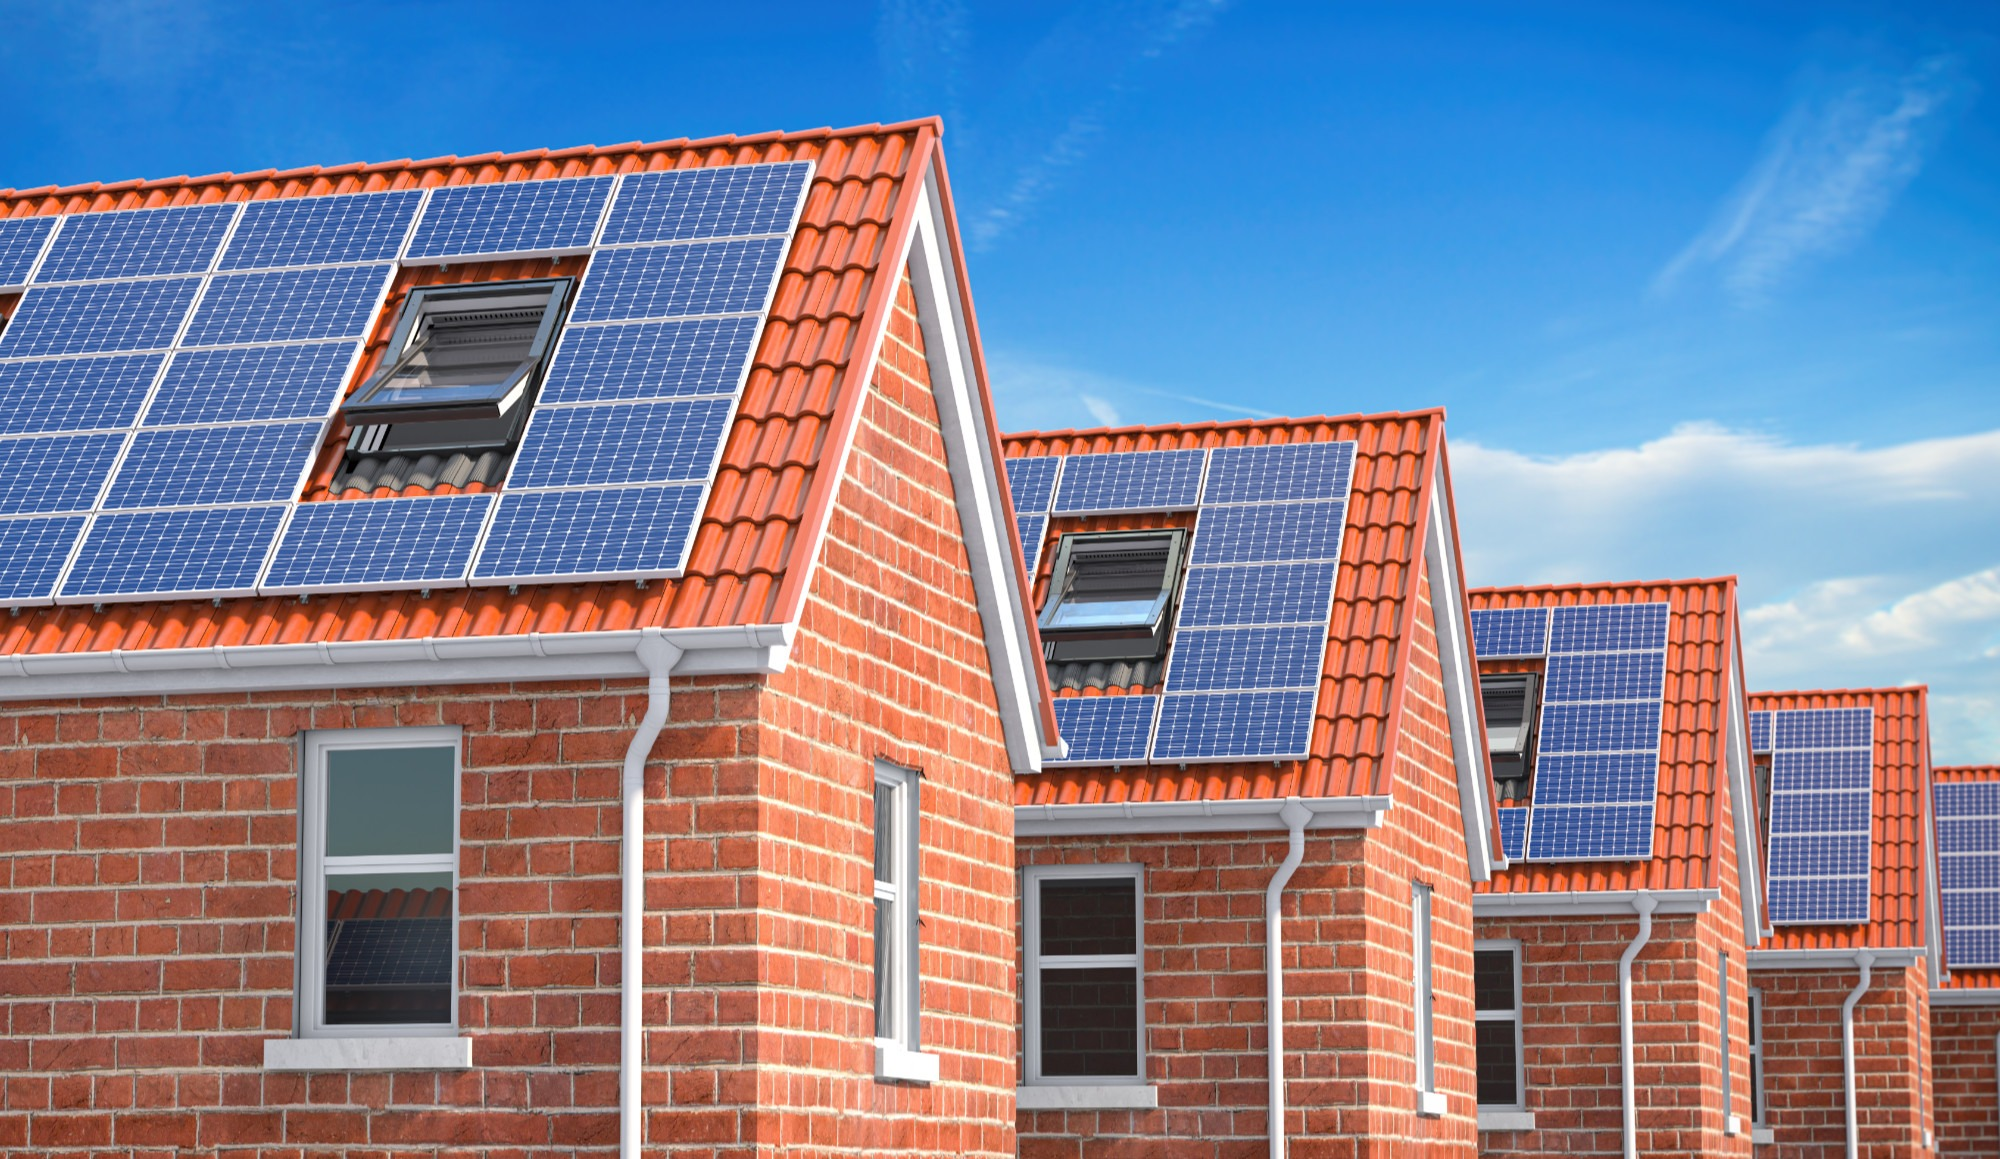 solar panels on rows of roofs